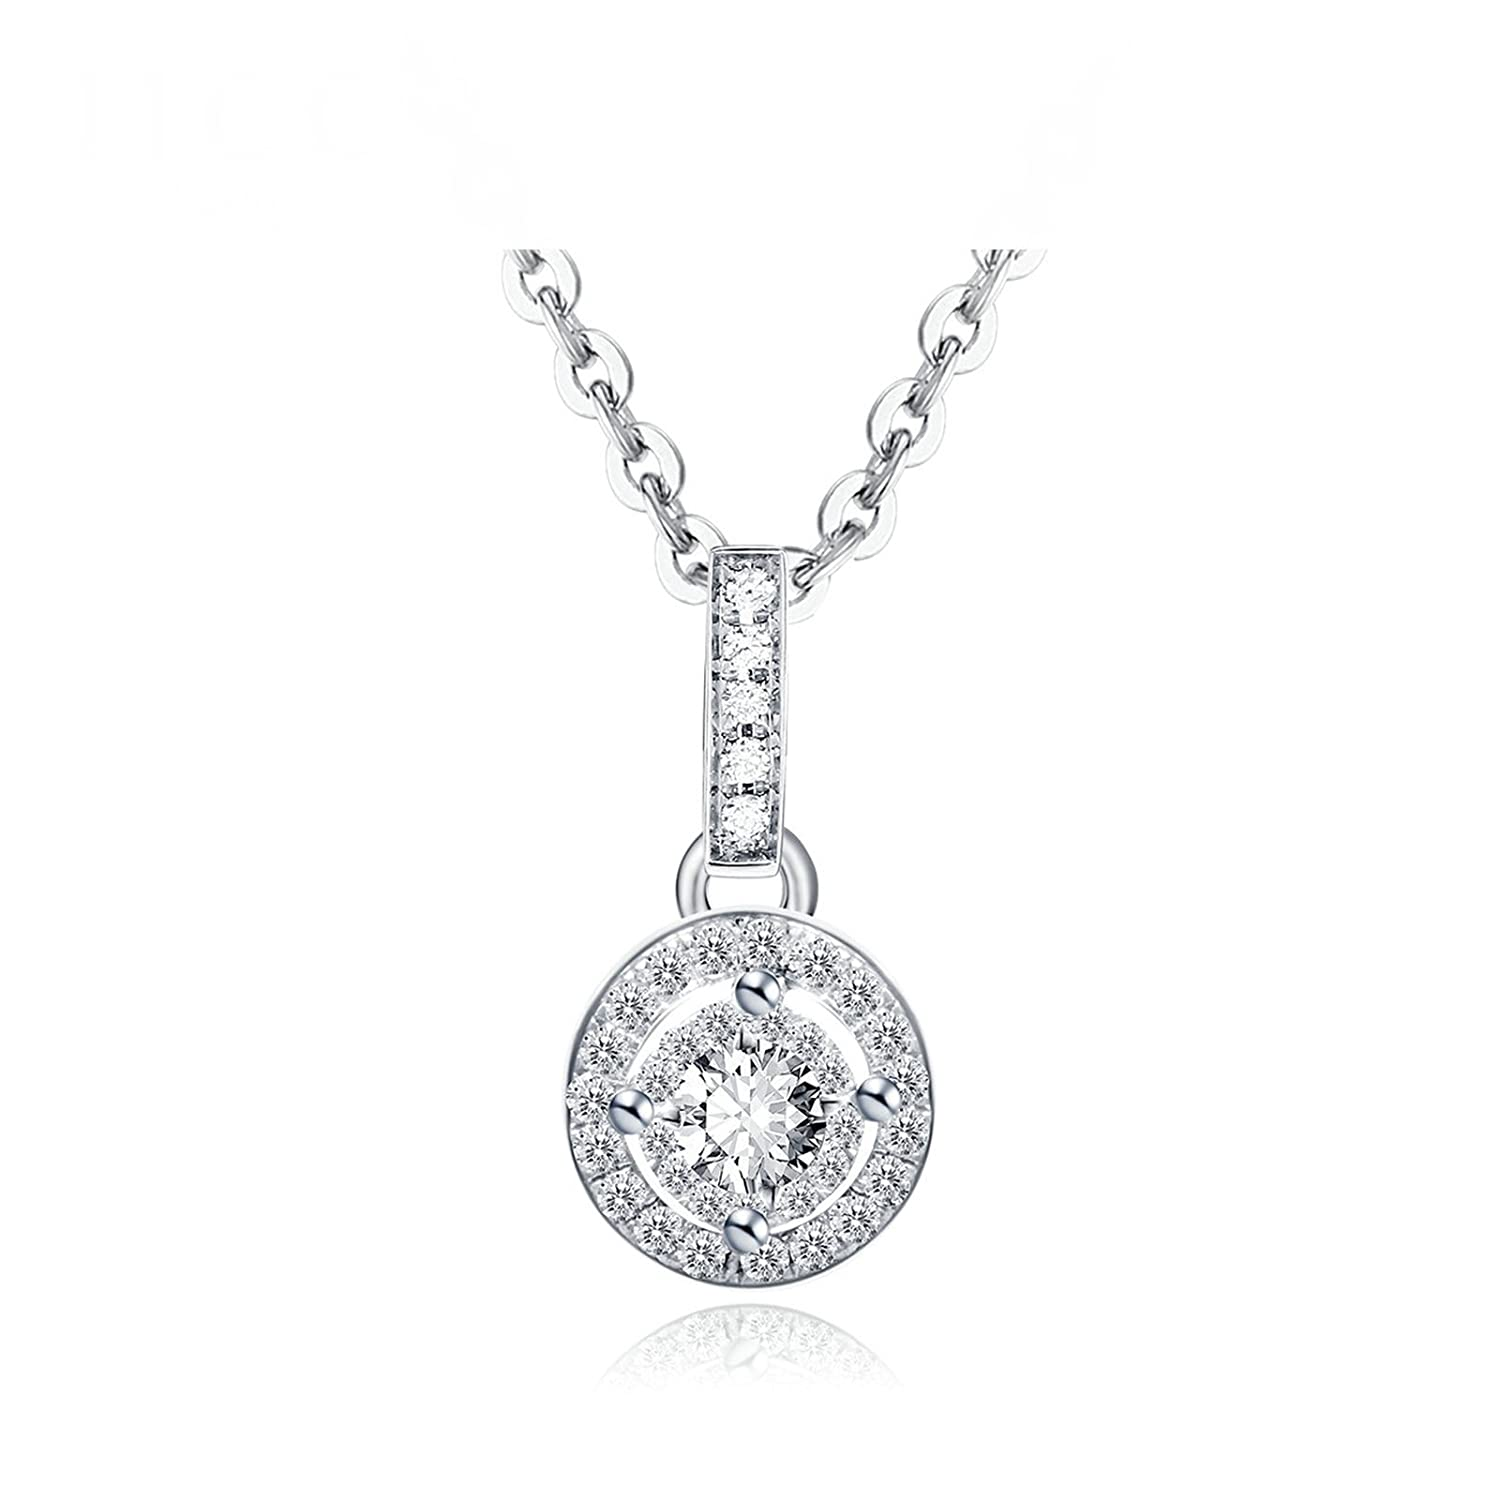 KnSam 18K gold Necklace for Women Diamond Group Embedded Silver Chain Length 40+5CM [Fine Jewelry]